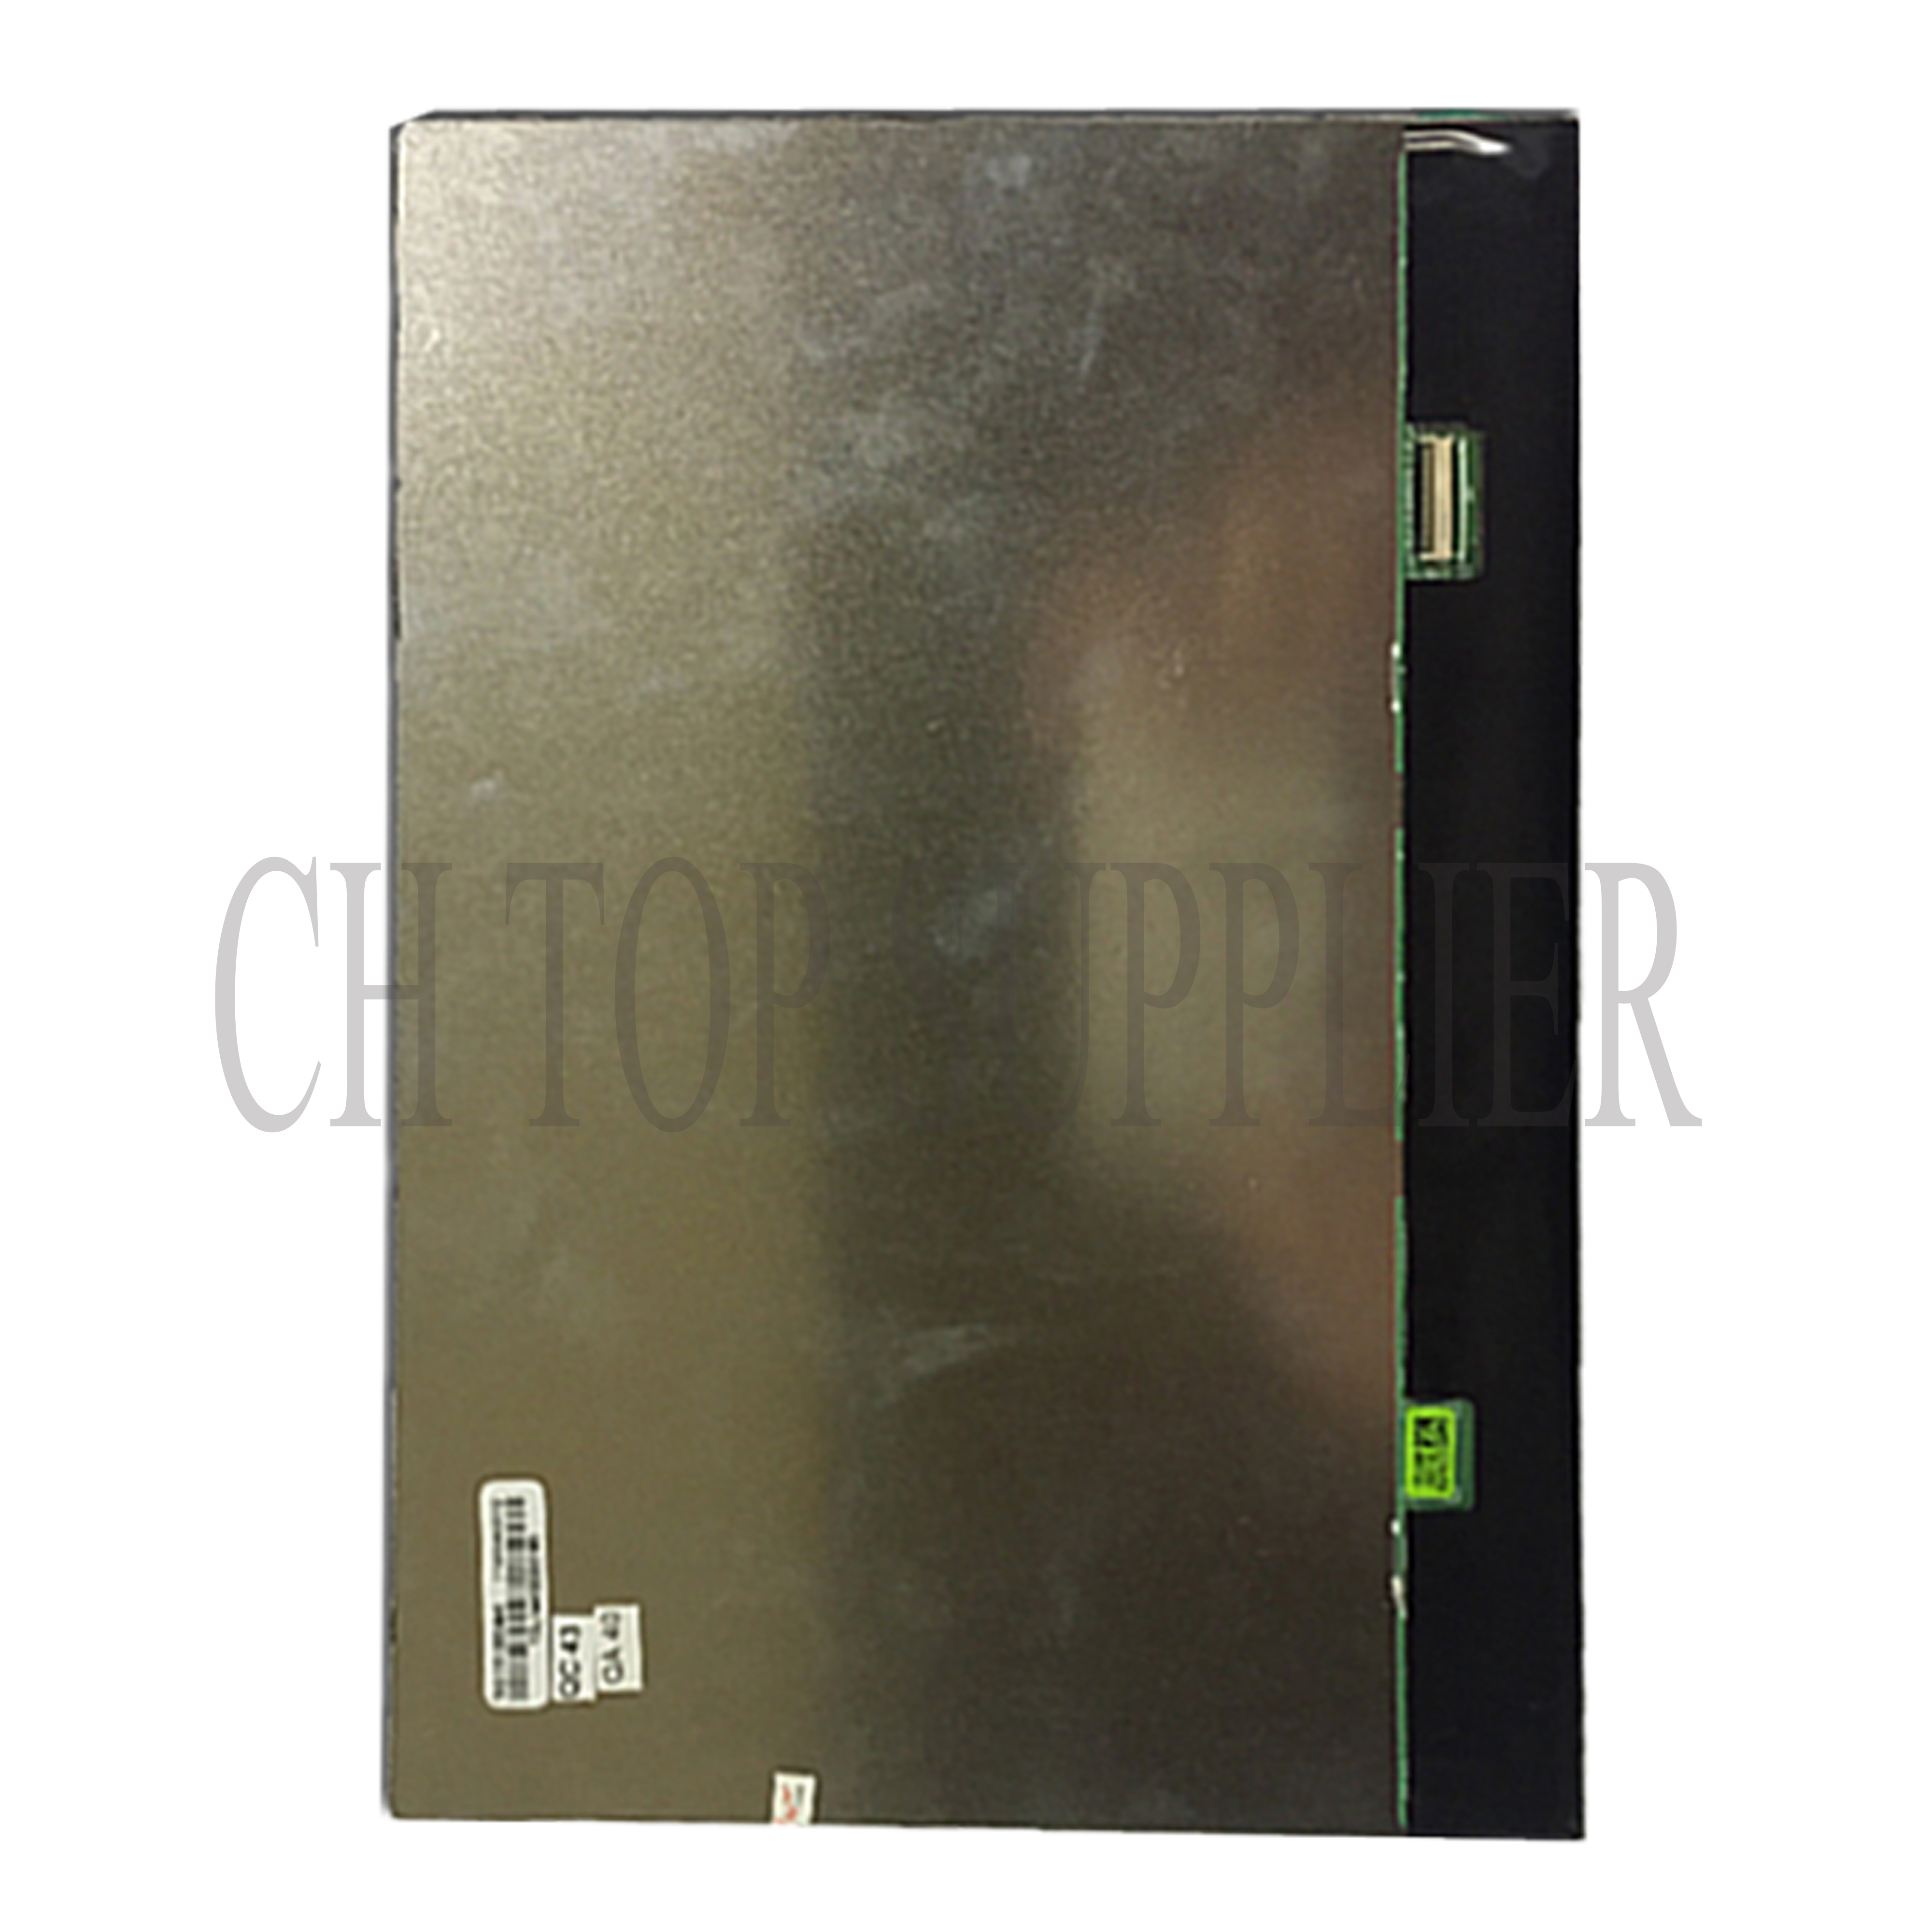 10.1INCH LCD display screen for Prestigio PMP5101C_QUAD MultiPad 4 Quantum 10.1 PMP5101C tablet PC FREE SHIPPING